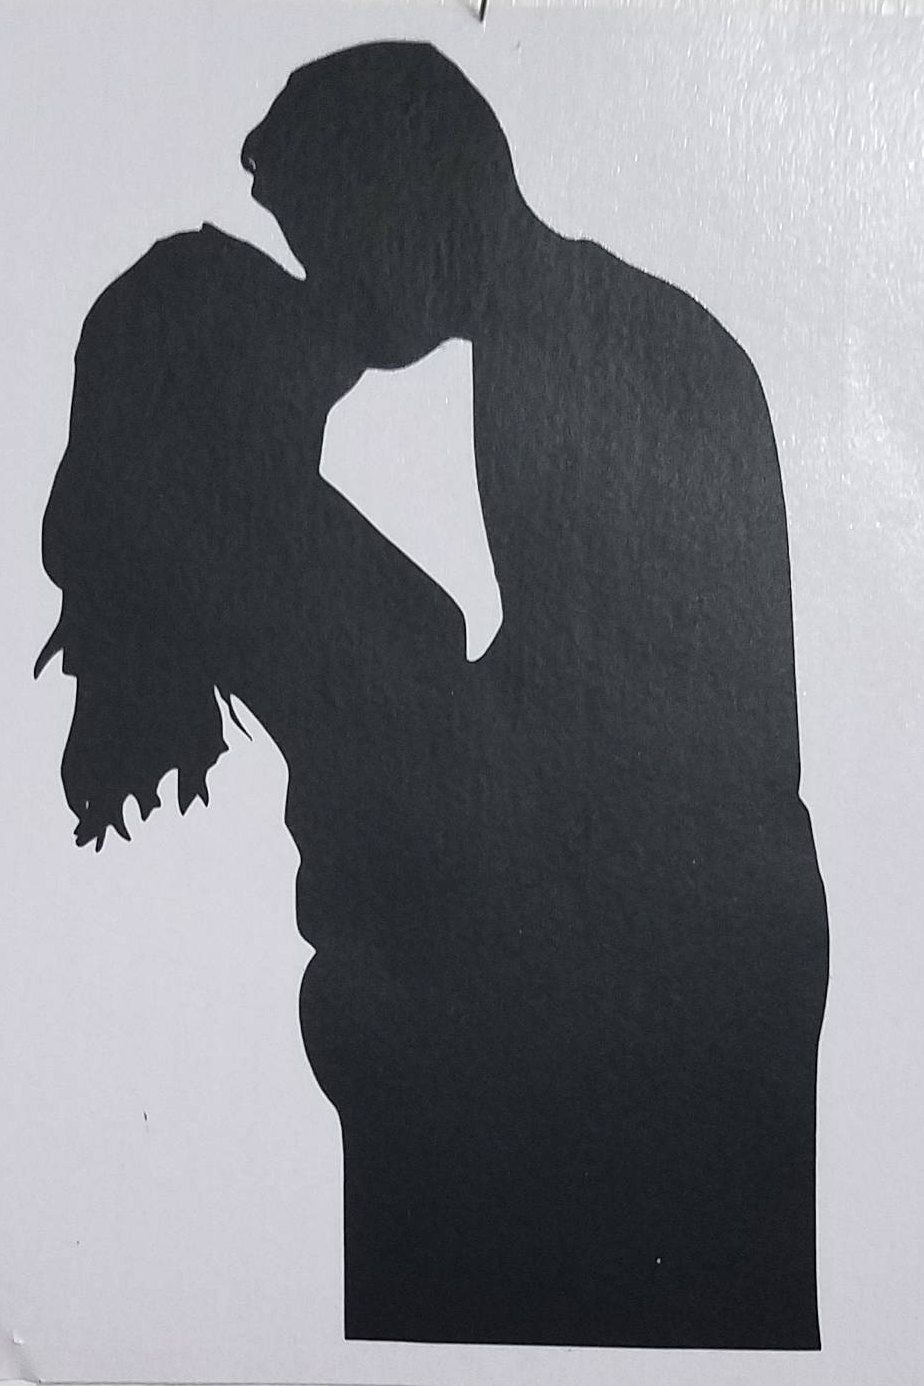 Kissing Couple Silhouette Vinyl Decal Decal Window Decal Vinyl